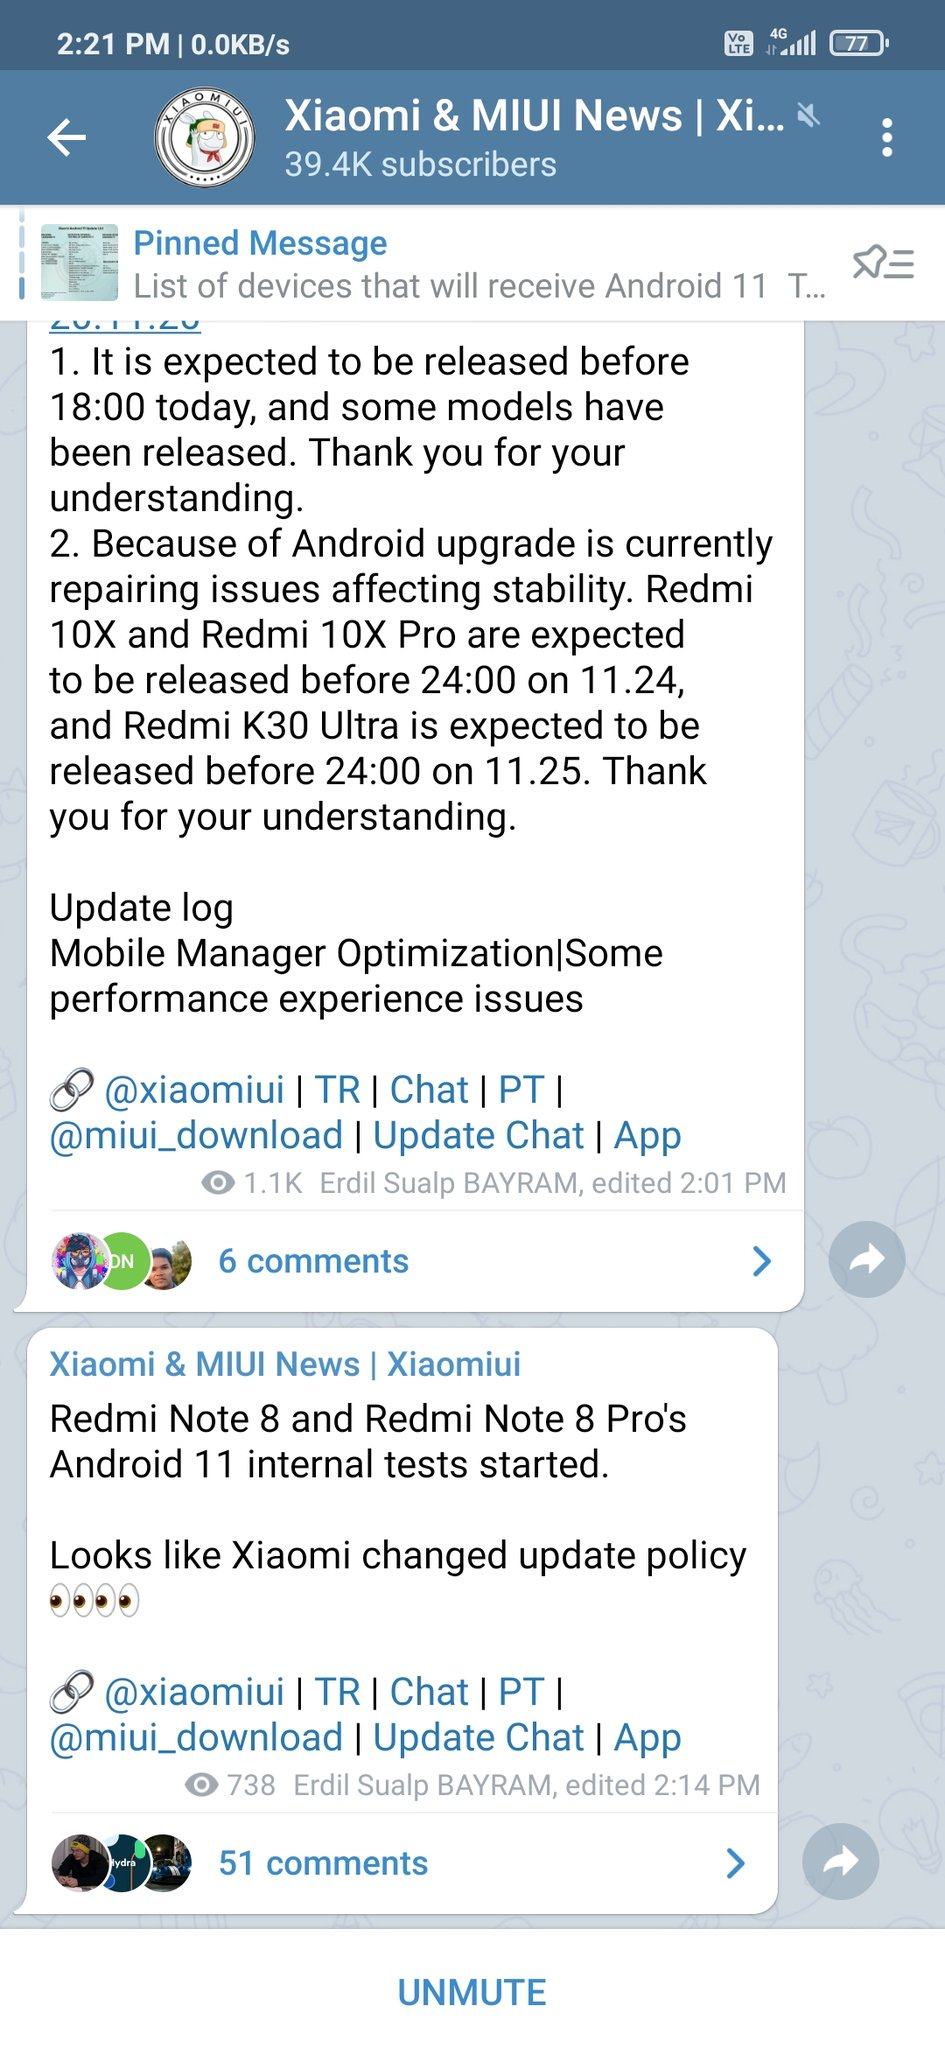 redmi note 8 pro android 11 rumor